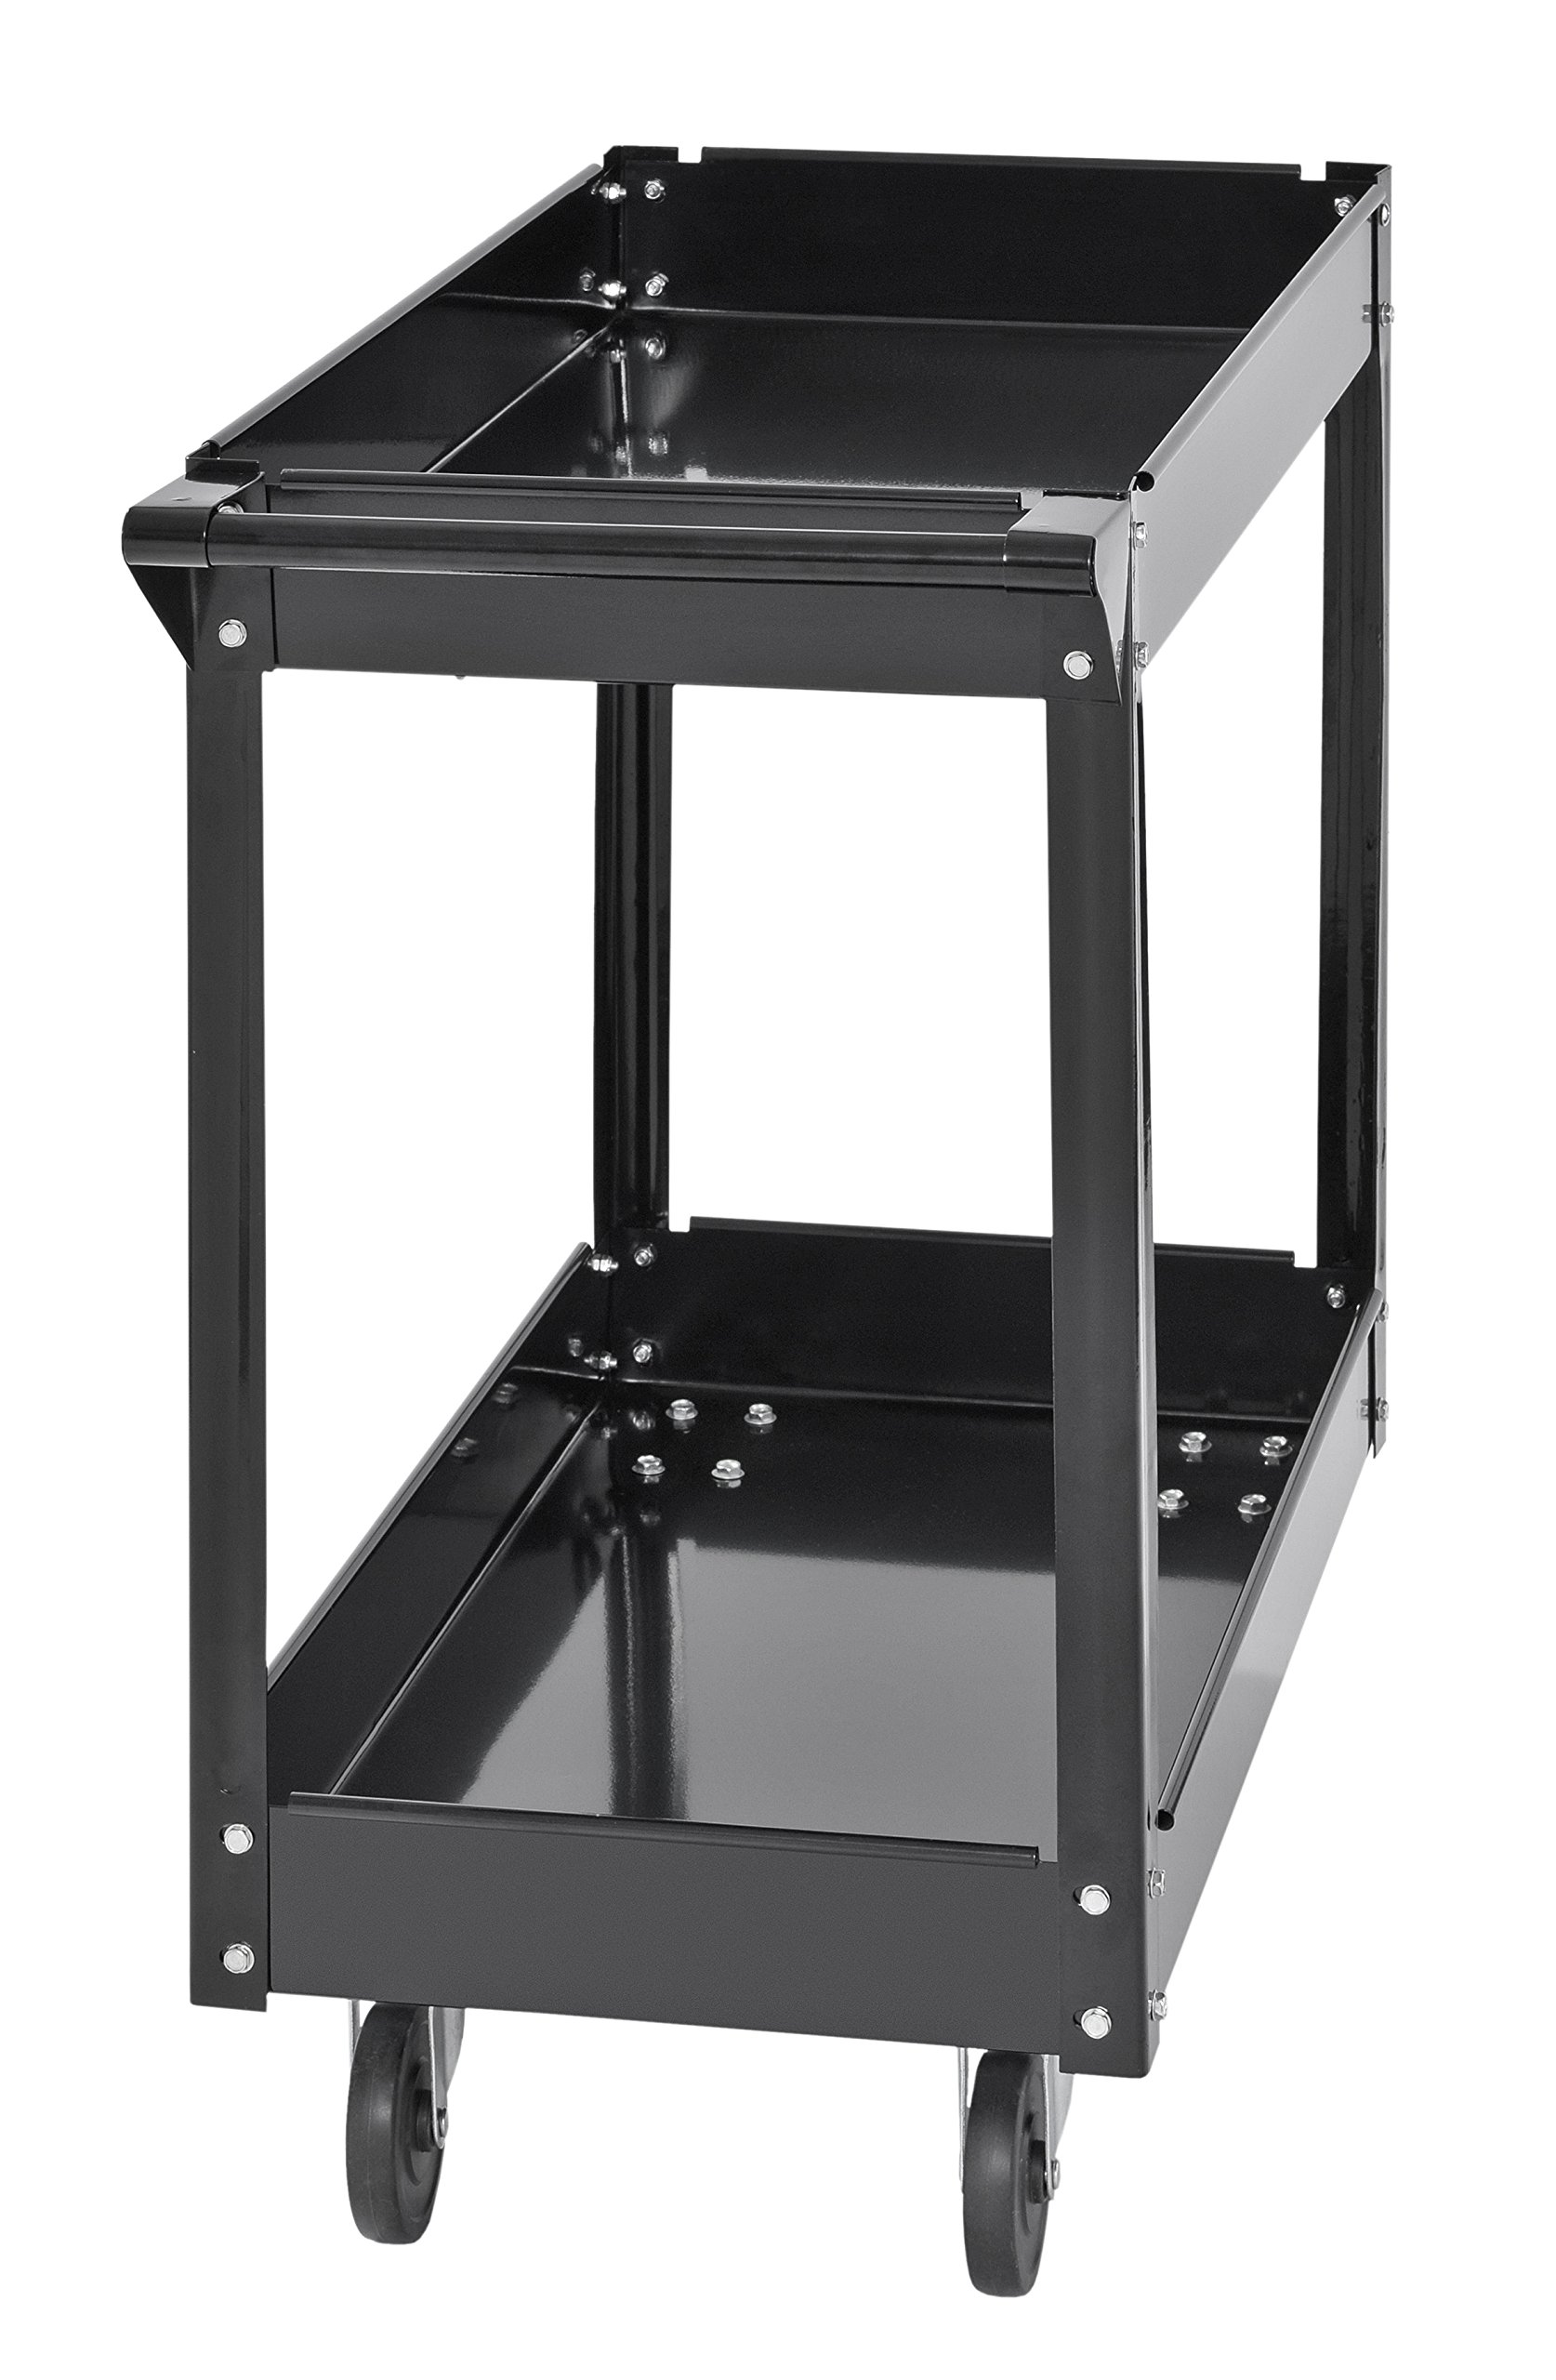 Muscle Rack SC3016 Industrial Black Commercial Service Cart, Steel, 220Lbs Capacity, 33'' Width x 30.5'' Height x 16'' Depth, 2 Shelves, 30.5'' Height, 33'' Width, 16'' Length by Muscle Rack (Image #6)